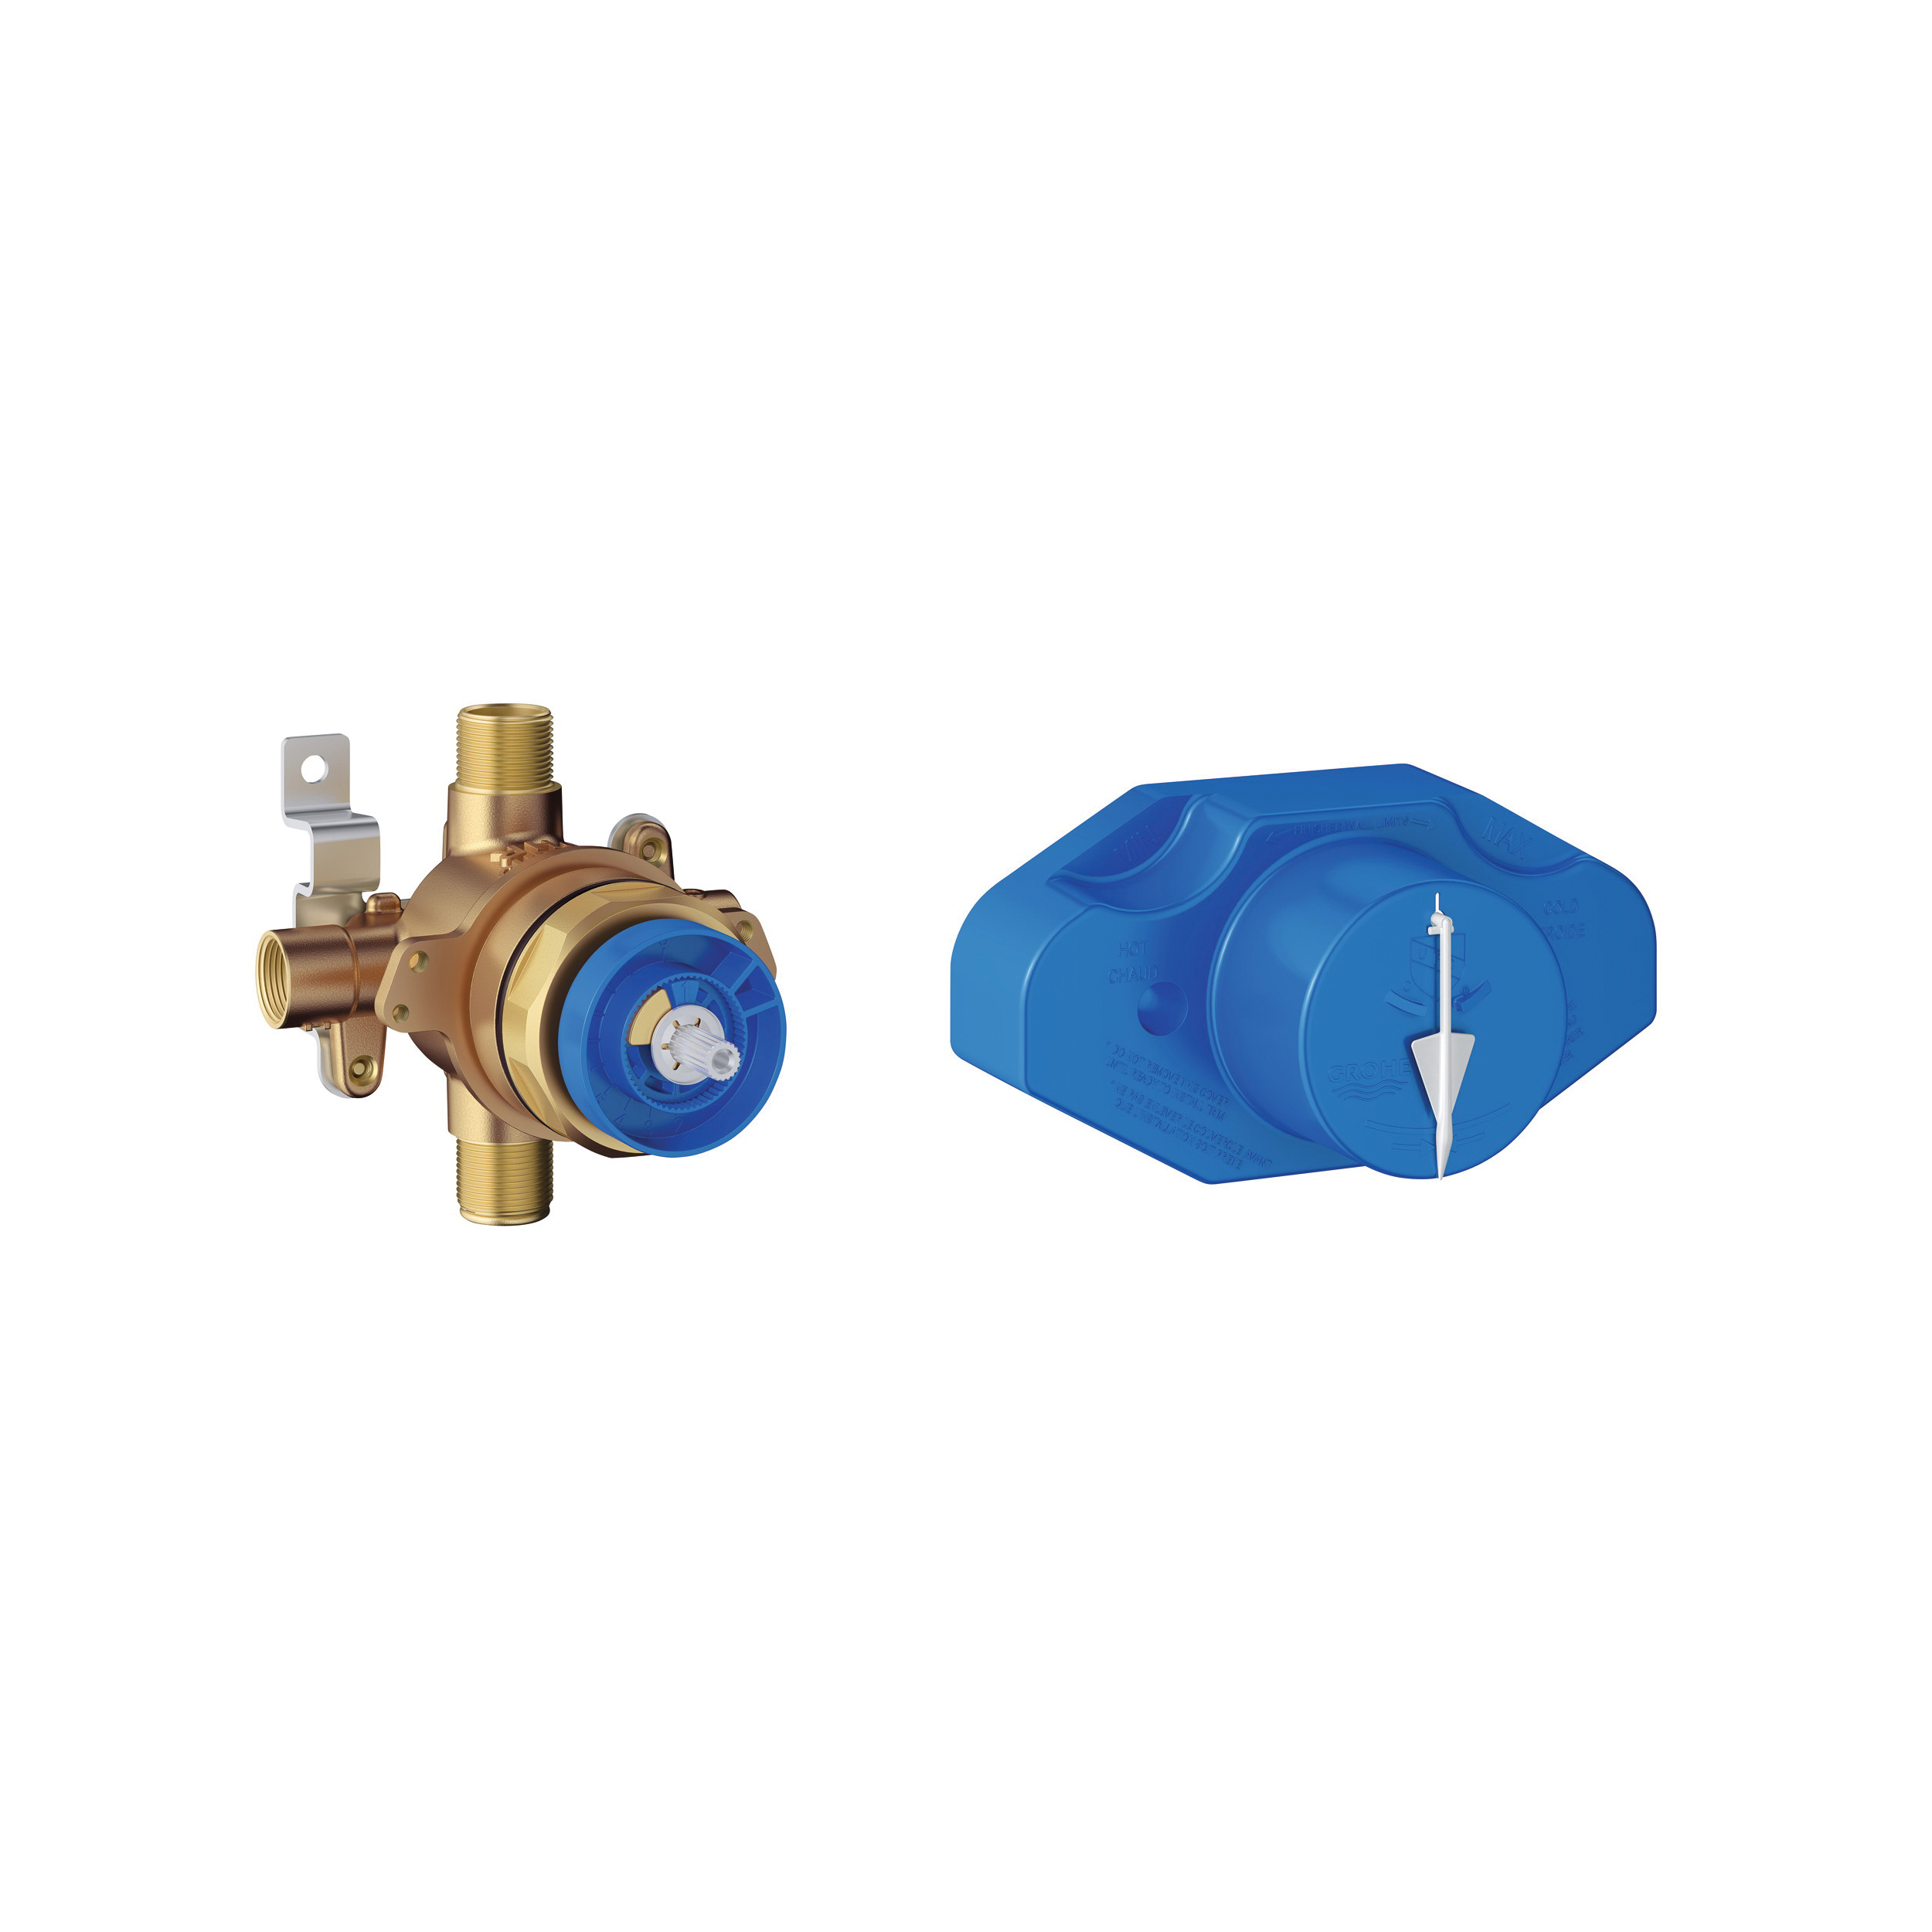 GROHE 35066001 Grohsafe™ Universal Rough-In valve, 1/2 in C Inlet x 1/2 in C/MNPT Outlet, Brass Body, Import